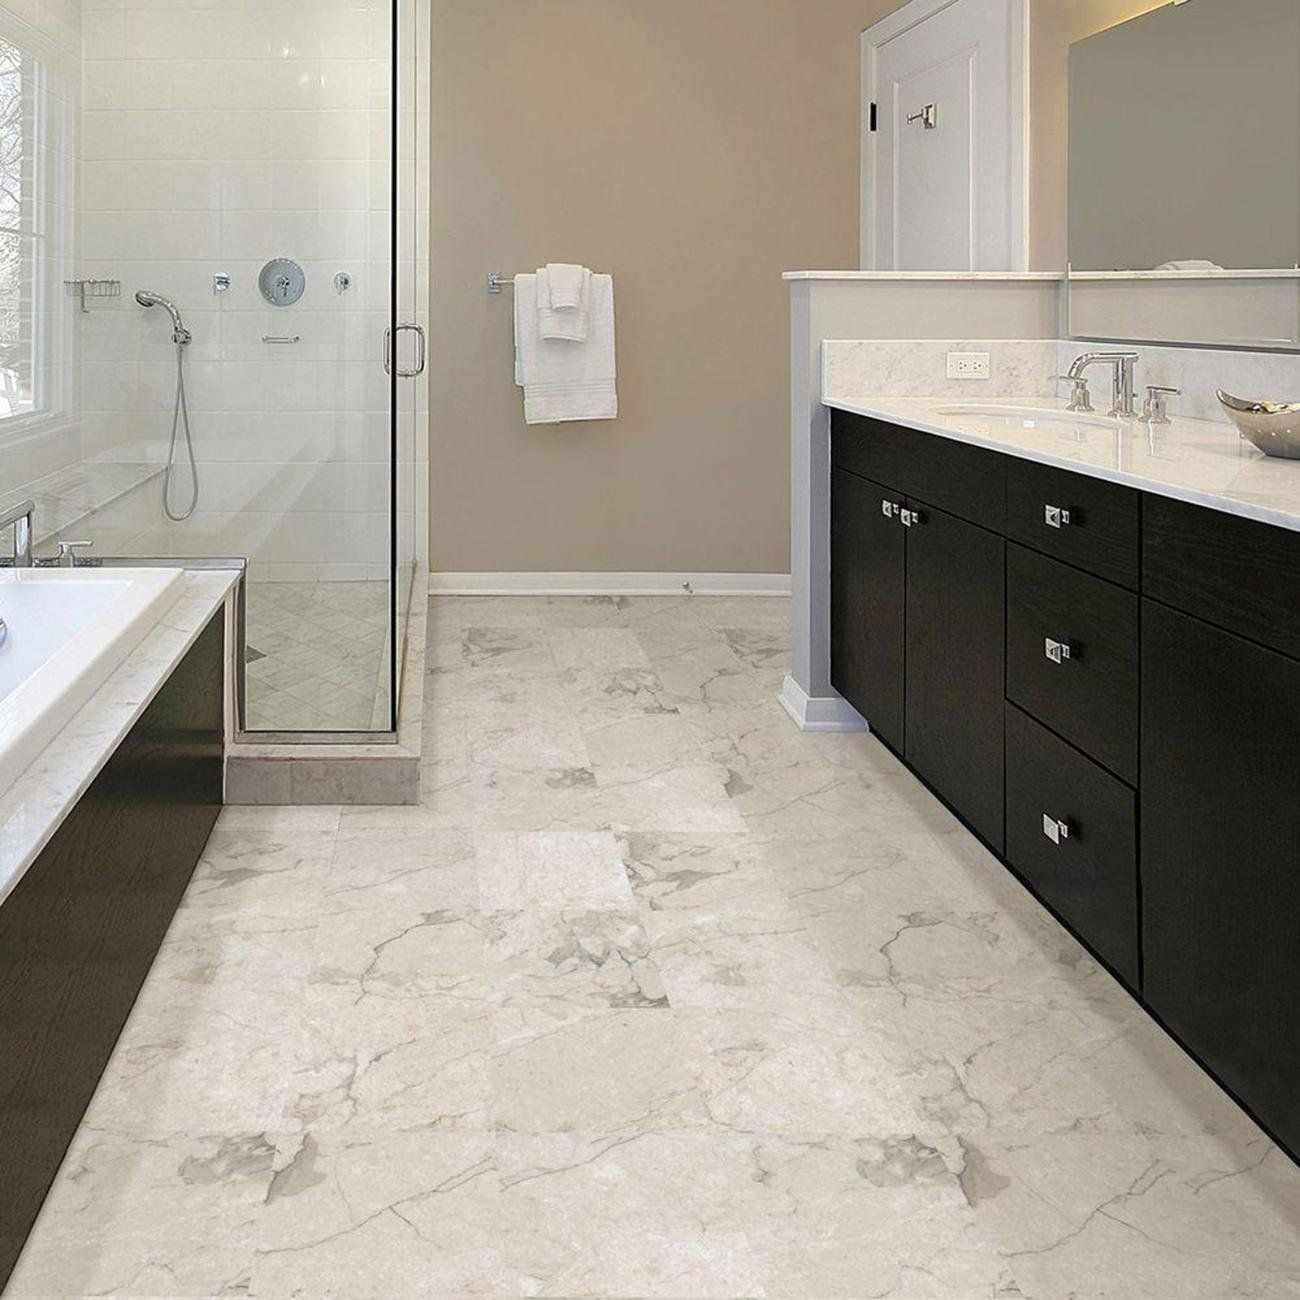 5 ways to get the marble look without the marble price vinyl 5 ways to get the marble look without the marble price marble vinylvinyl tilesstick on tiles bathroompainted vinyl floorsvinyl dailygadgetfo Image collections